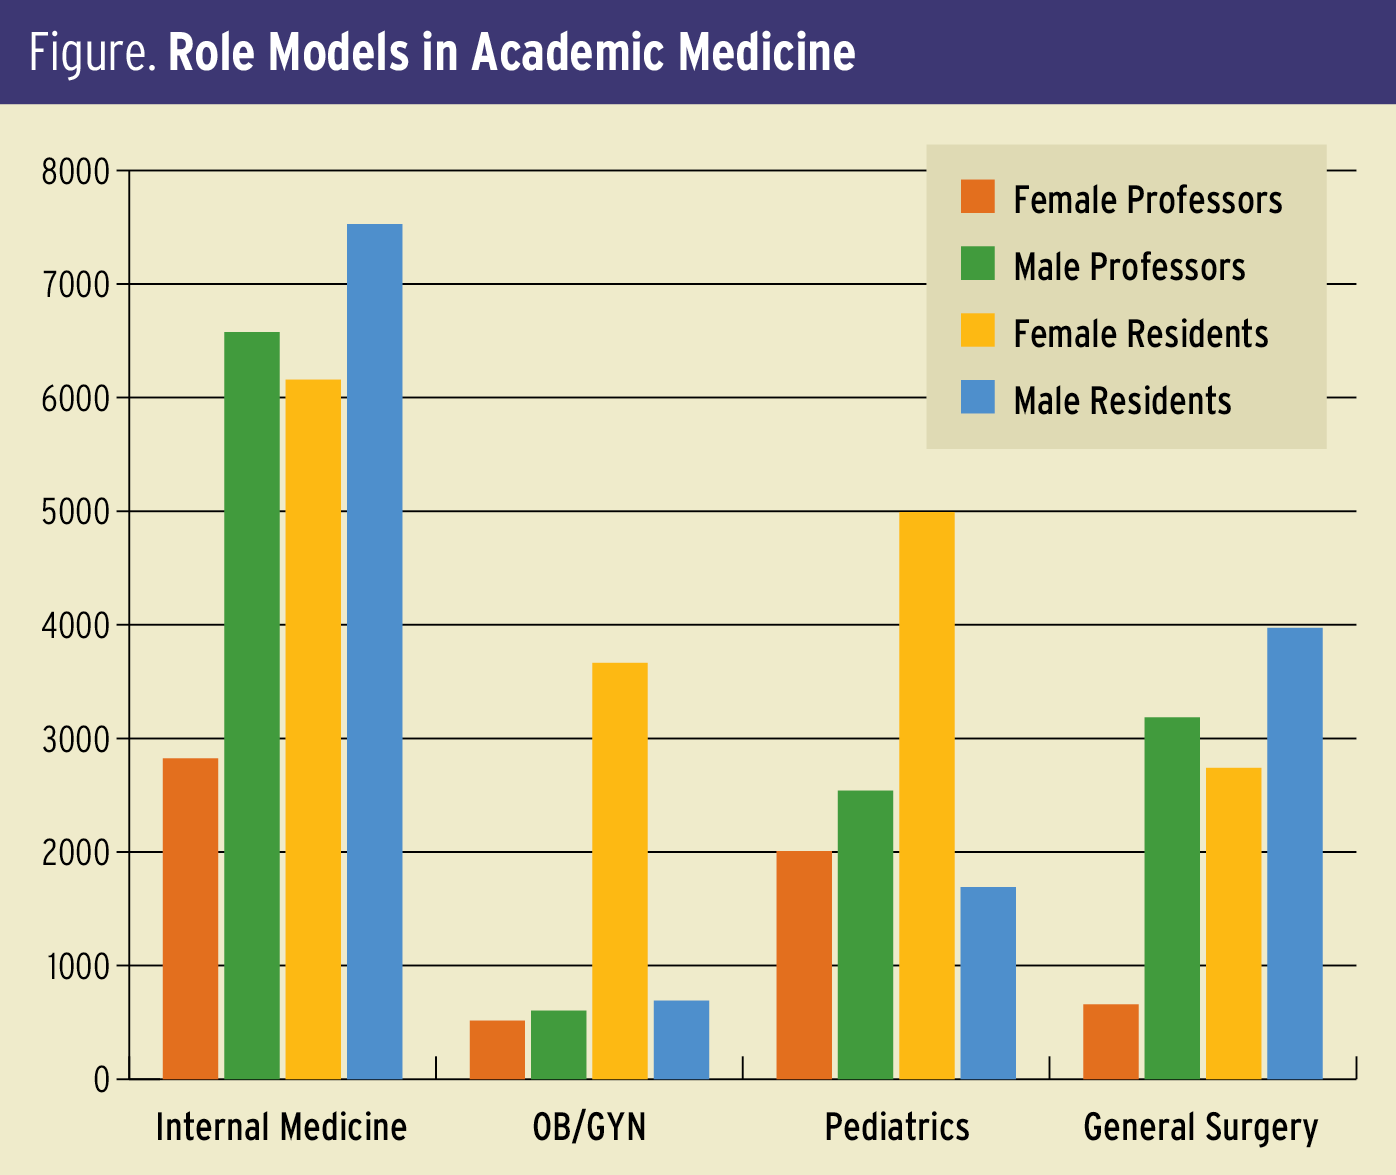 "All professors listed are tenured or on track for tenure. Professor data based on 2015 AAMC ""Distribution of U.S. Medical School Faculty by Sex, Race/Ethnicity, Tenure Status, and Department"" (aamc.org/download/453410/data/15table19.pdf). Resident data based on 2014-2015 AAMC ""Report on Residents"" (aamc.org/data/448474/residentsreport.html)."